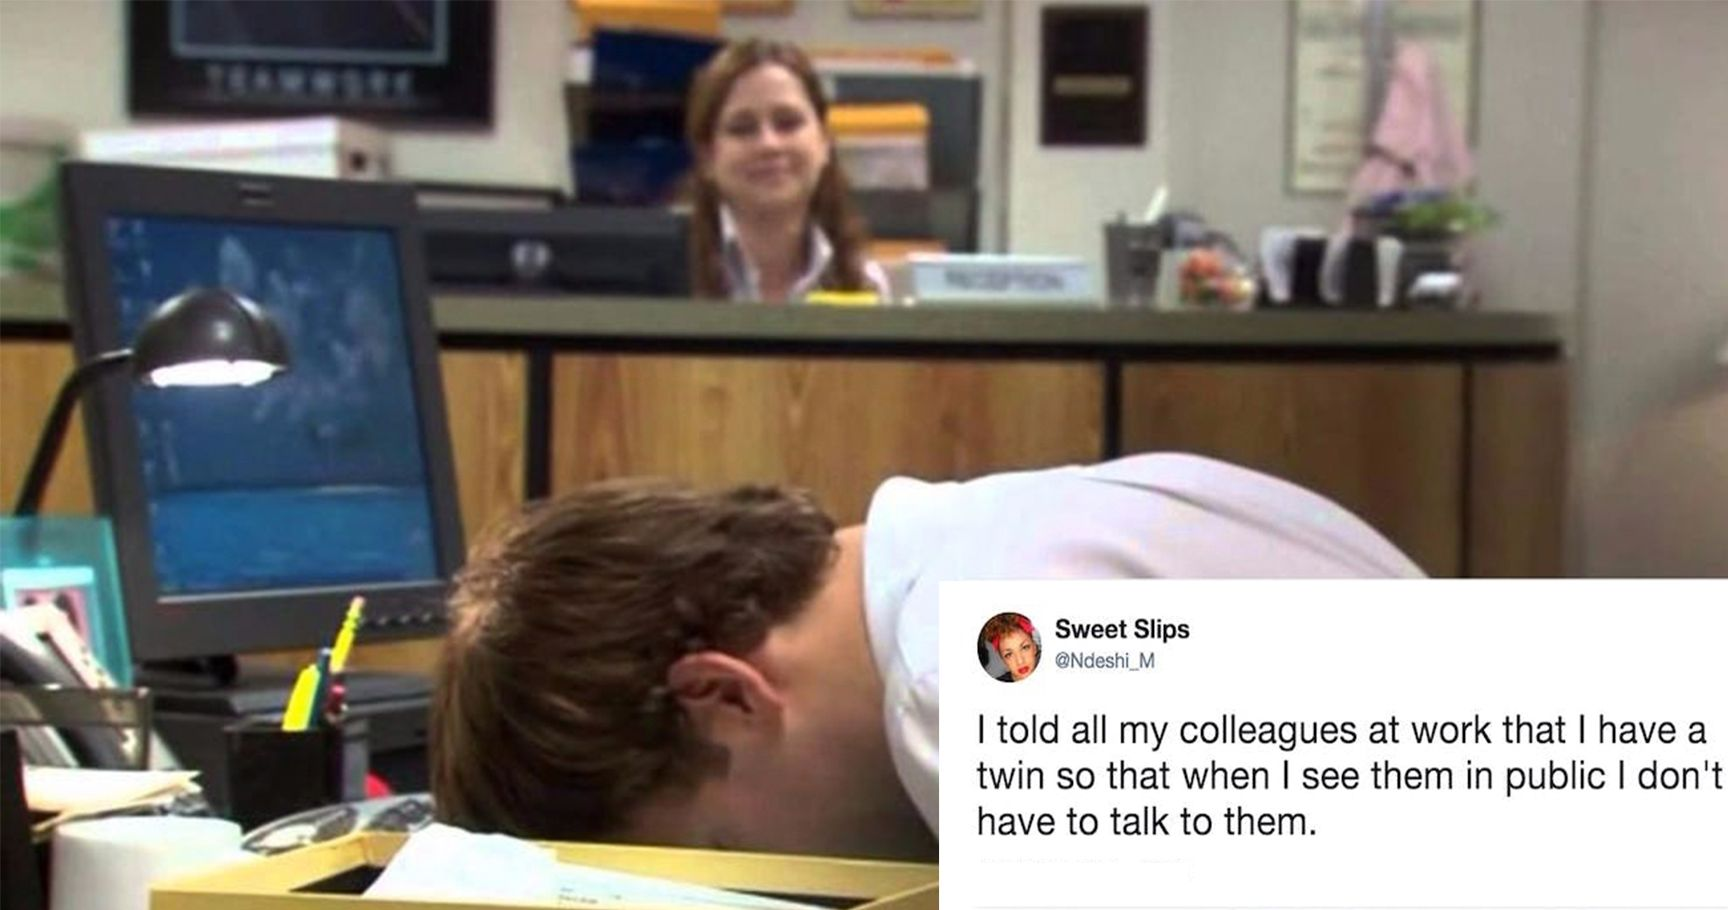 15 Hilarious Tweets From People Who Work In An Office